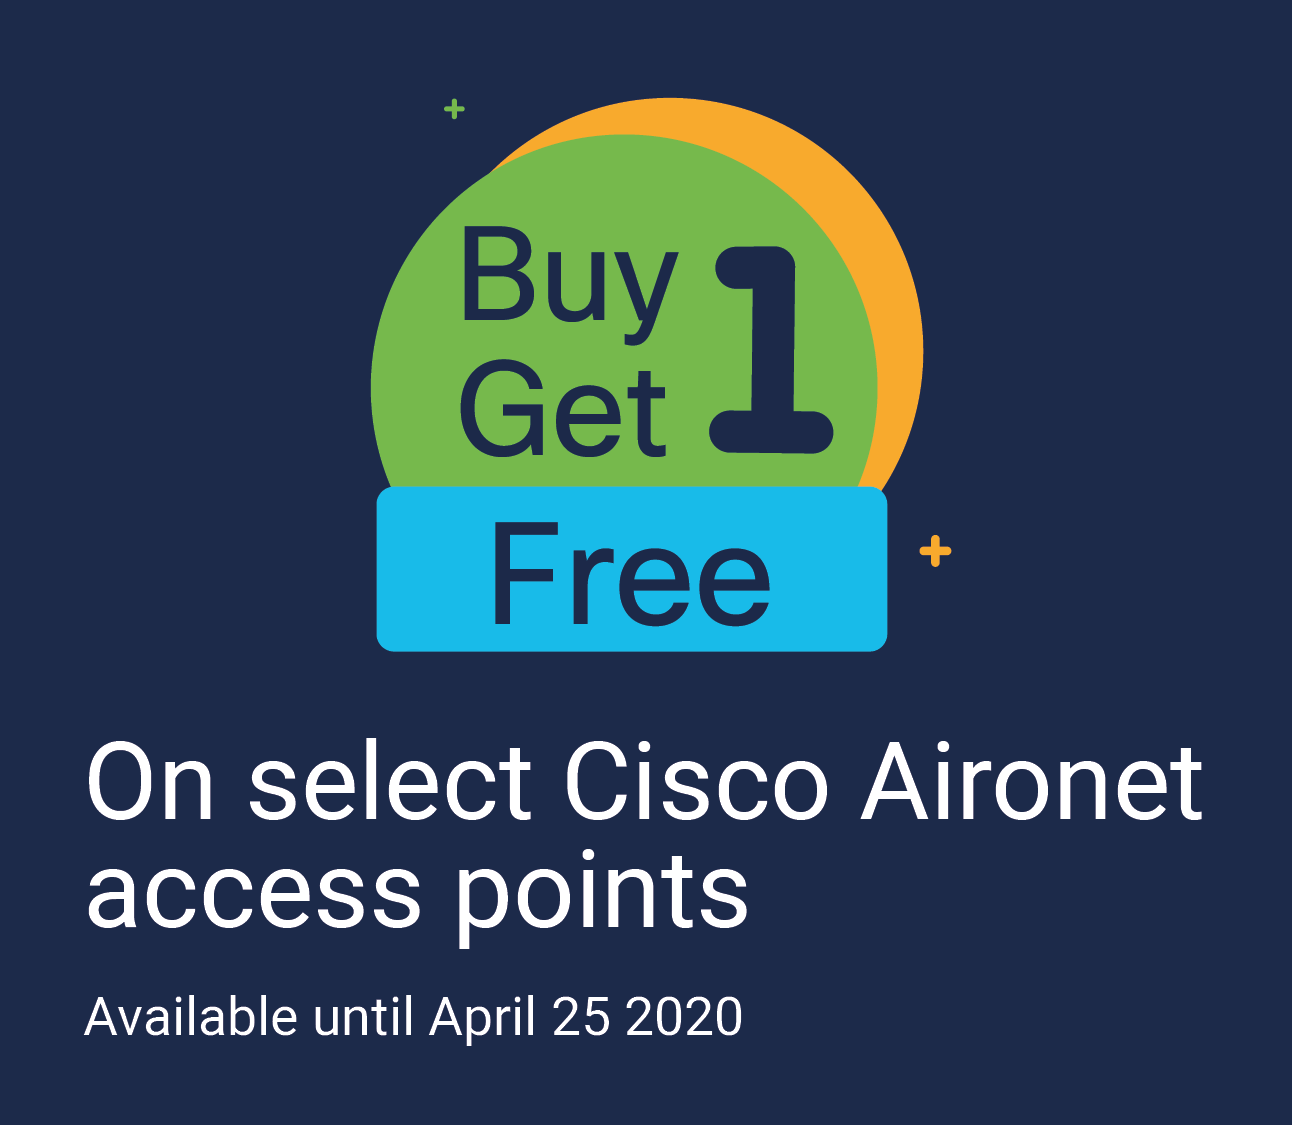 Buy One Get One with Cisco Aironet Featured Image